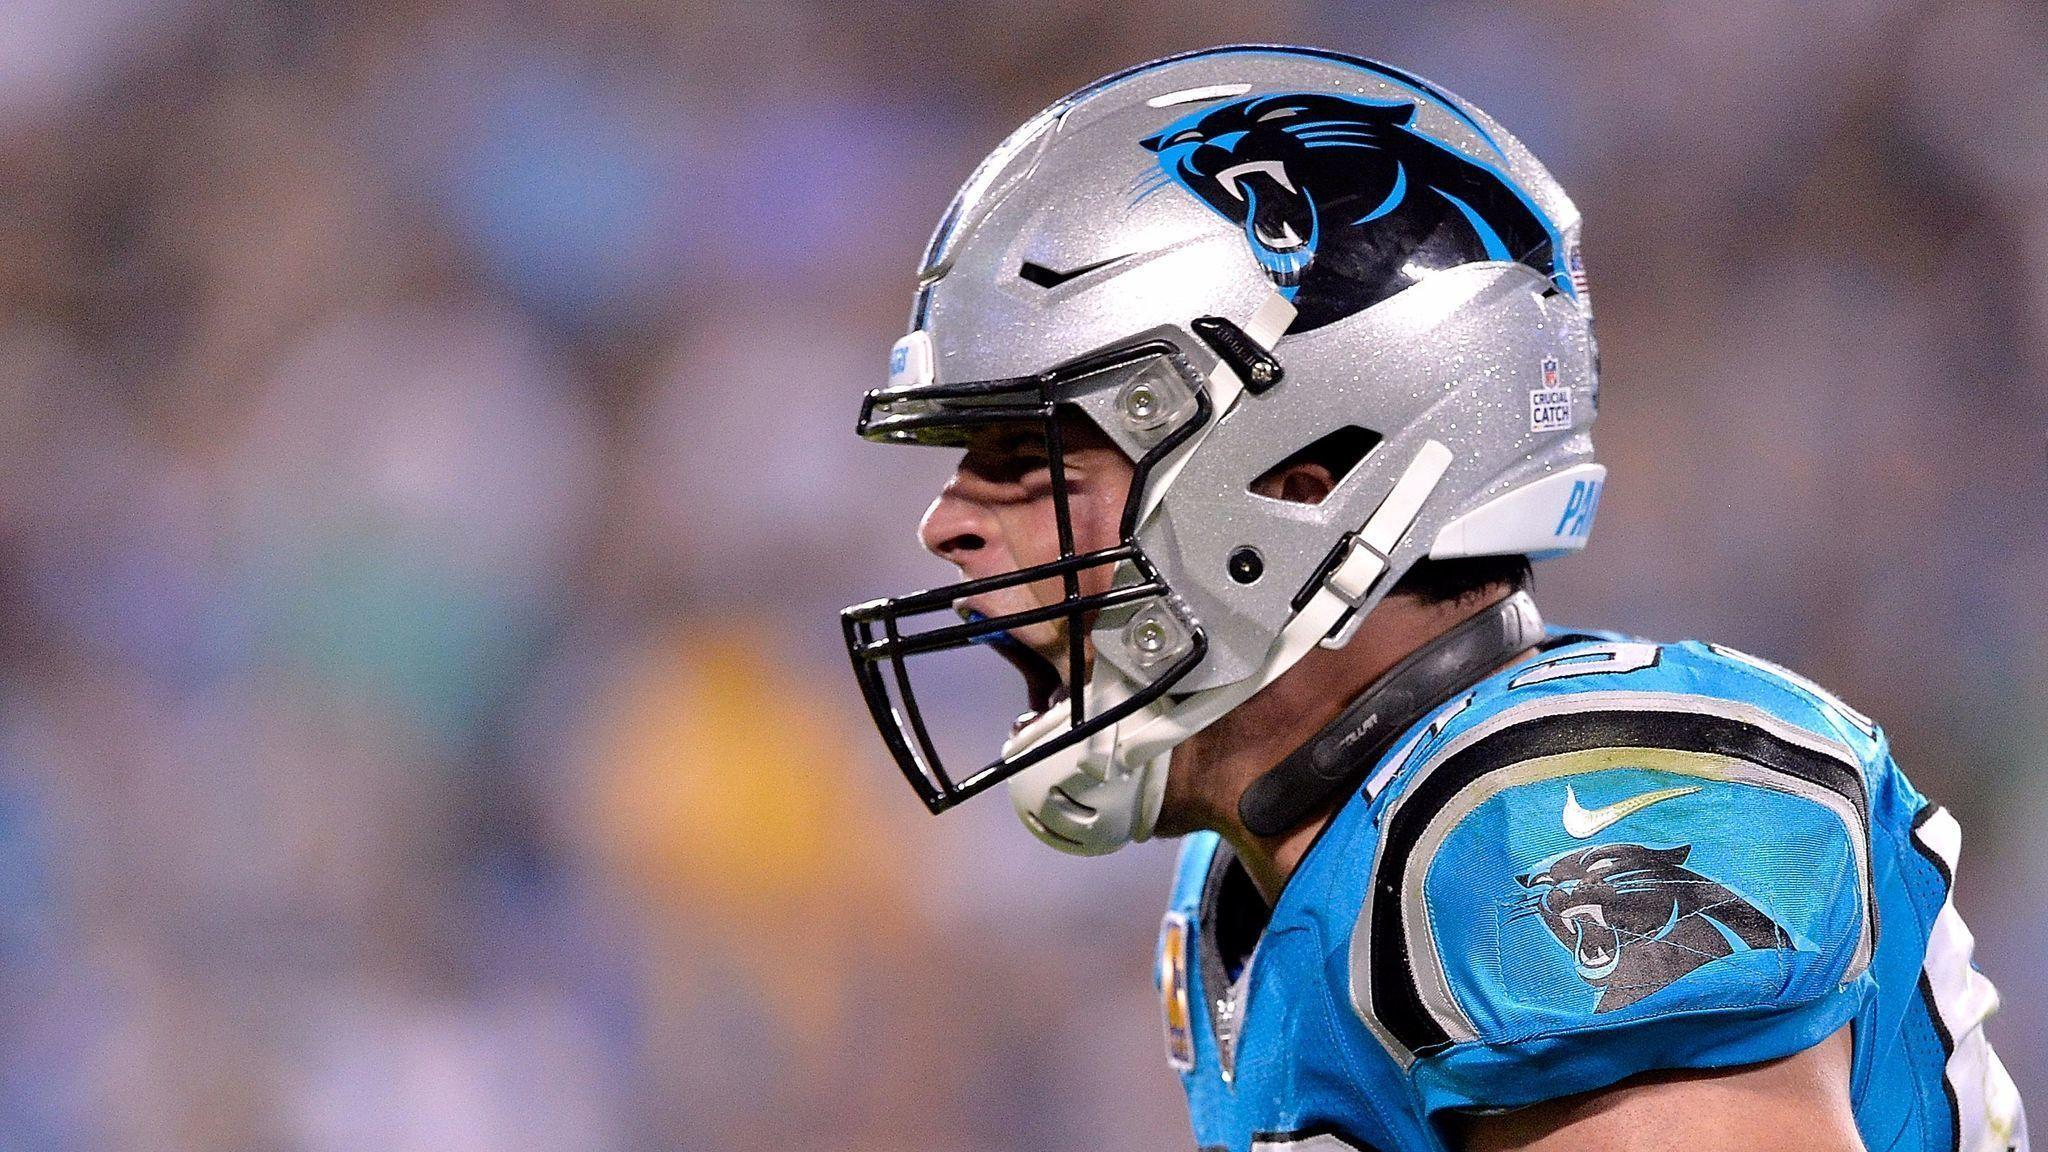 Kuechly situation requires caution, but there is hope Thursday